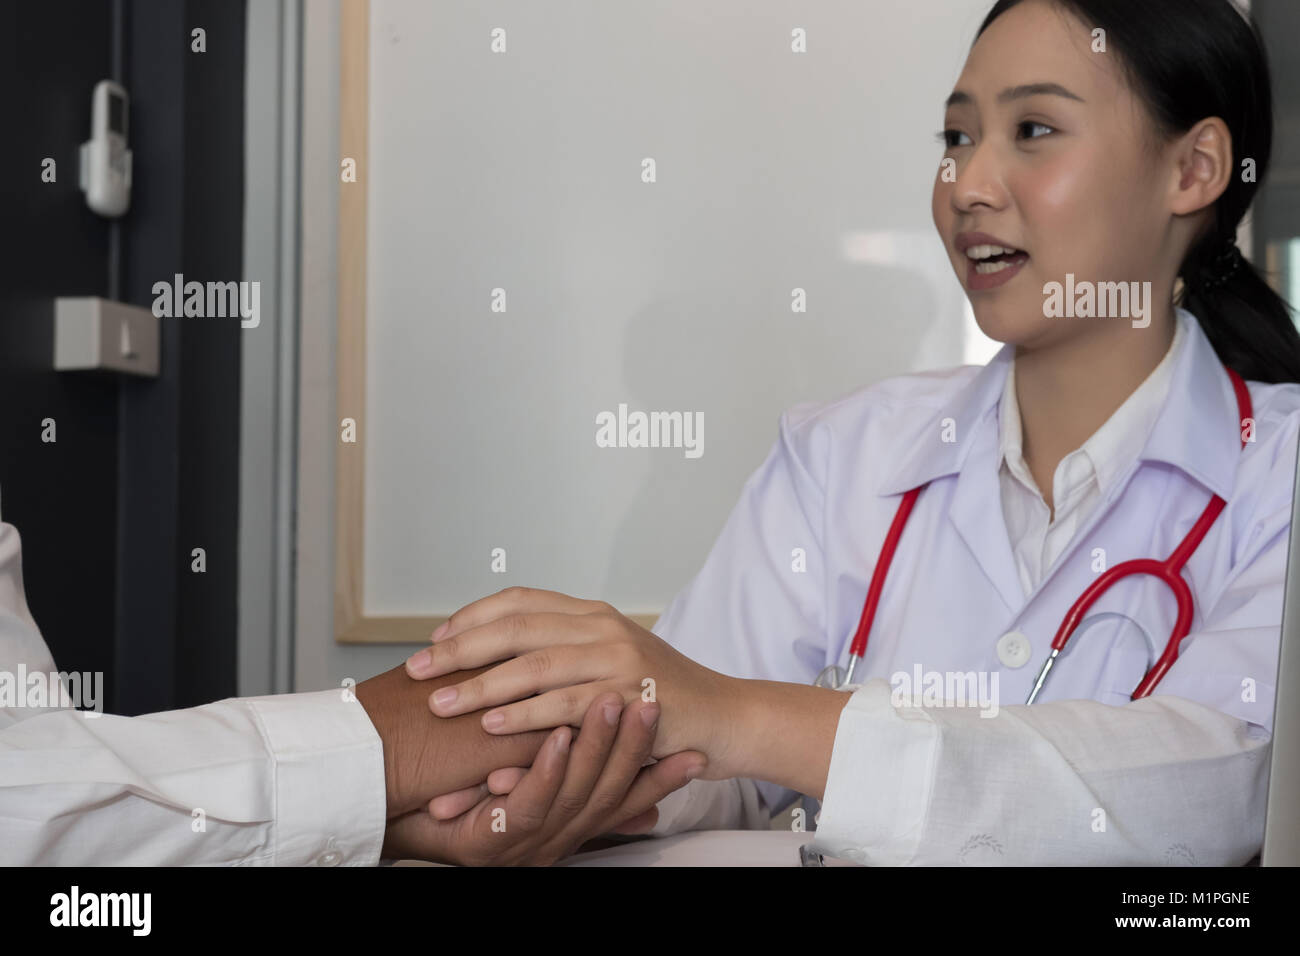 doctor holding patient hand & comforting him for bad news. physician support and encourage a man for medical - Stock Image